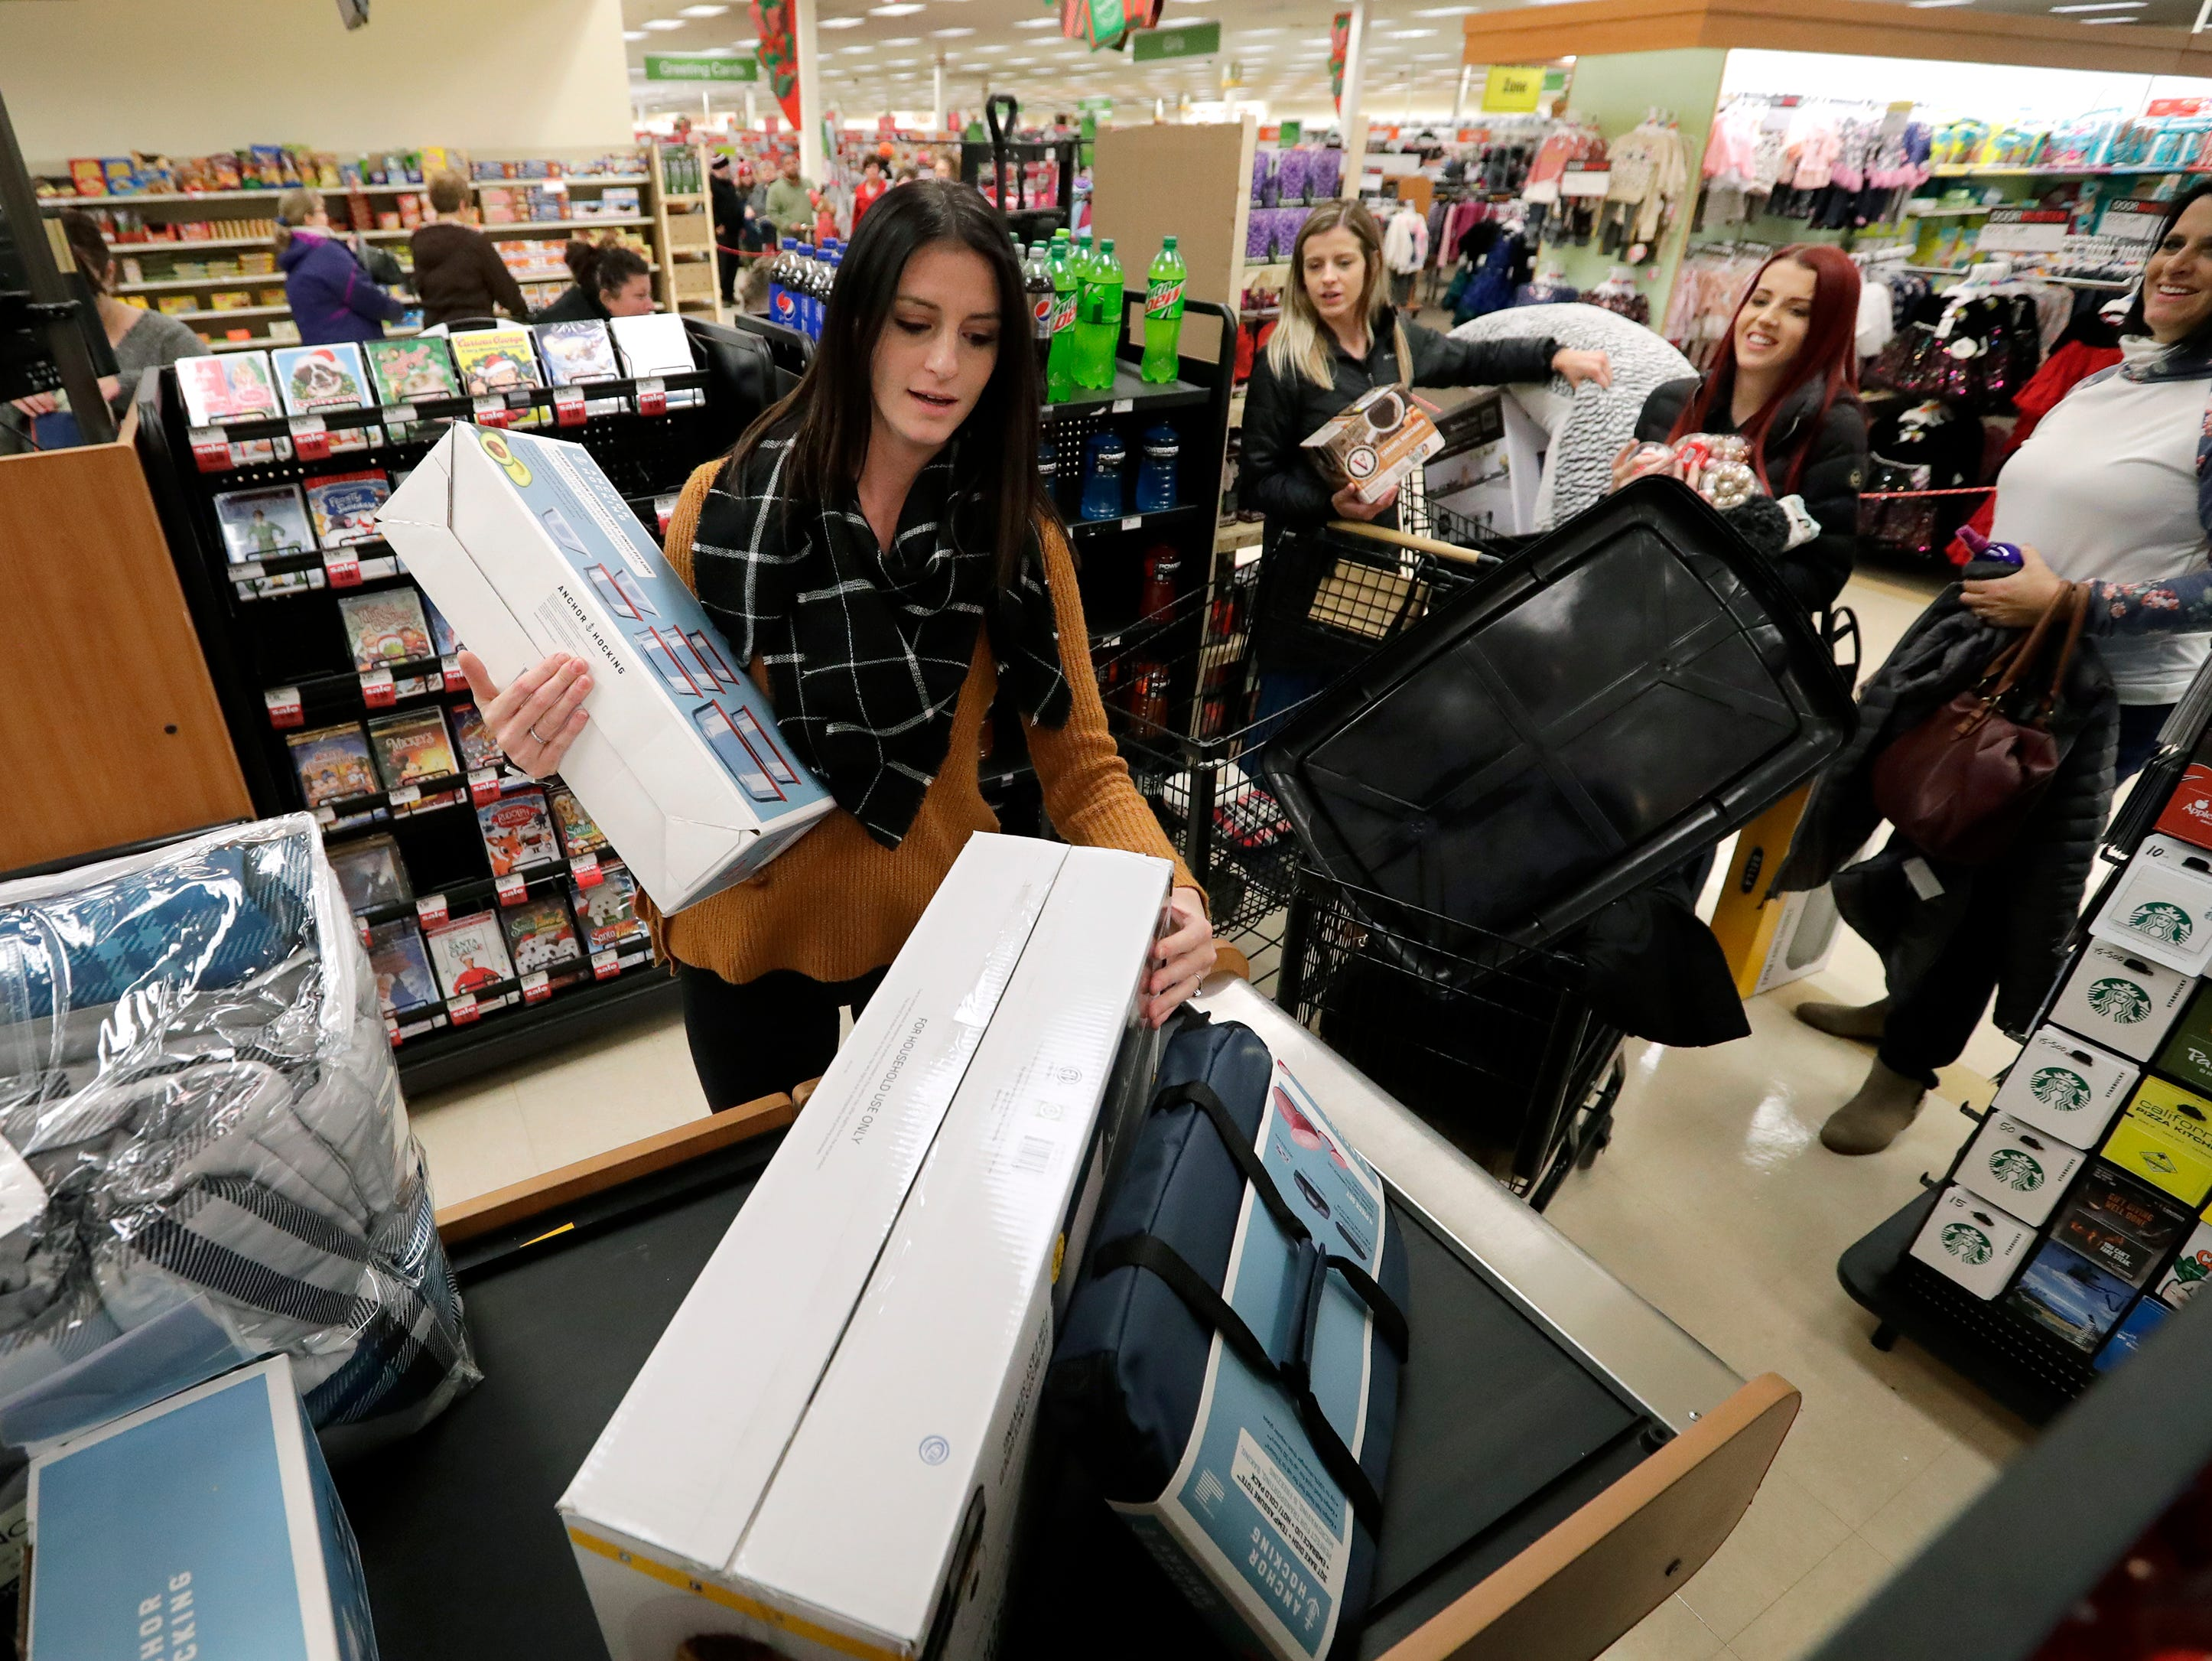 Kayla Williams, left, of Neenah has fun purchasing Black Friday specials with her sisters Kiera Miller of Appleton, Kendra Miller of Appleton and their mother Kelly Miller, far right, of Appleton Thursday, November 22, 2018, at Shopko in Appleton, Wis. 